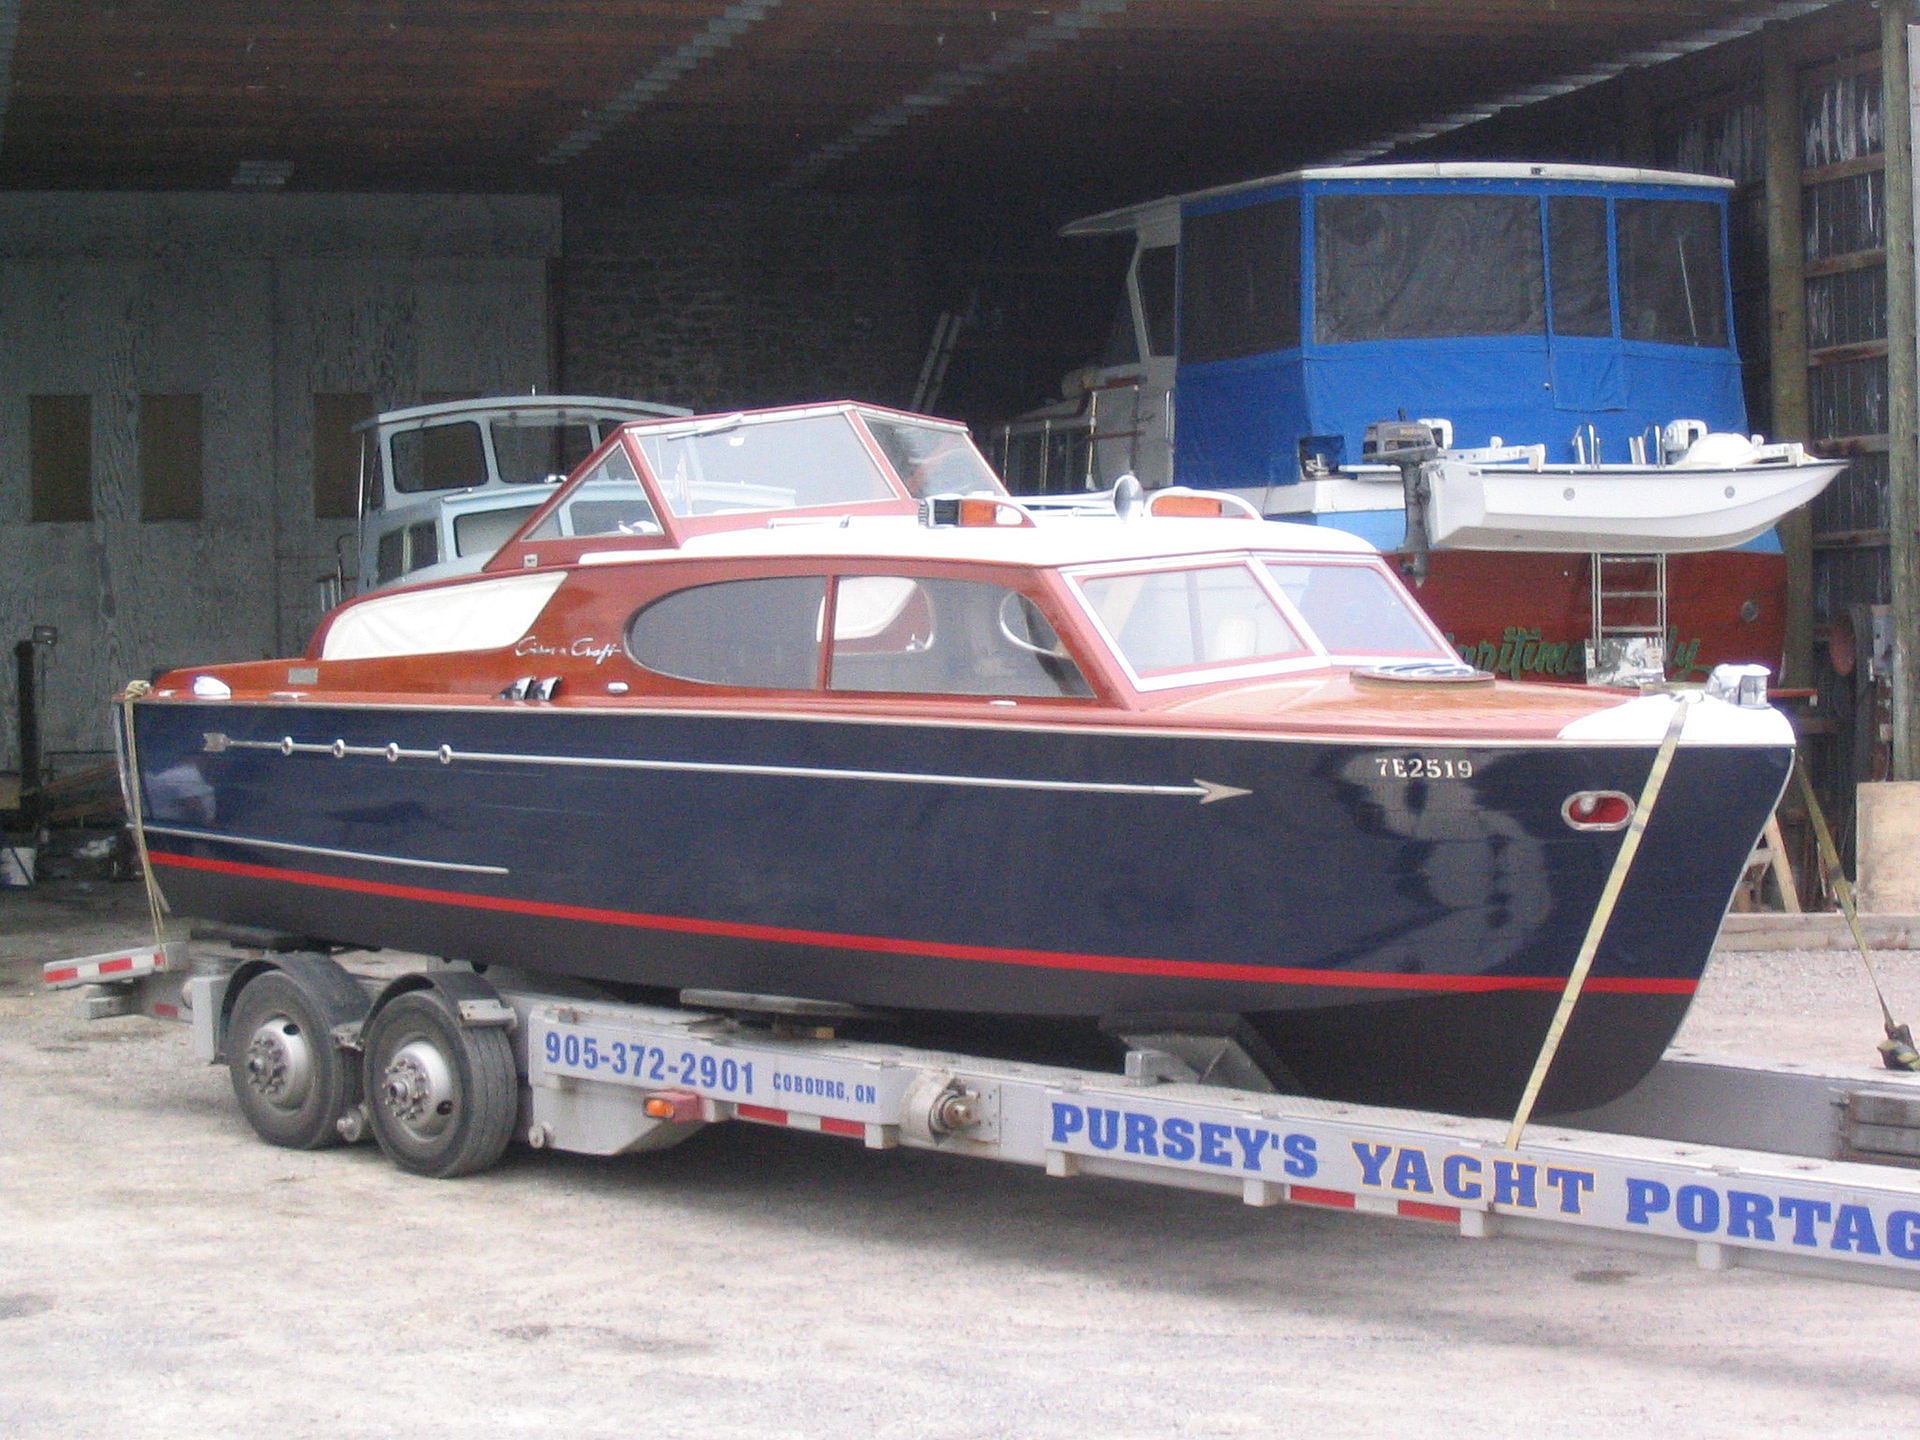 Sharp marine restoration and wooden boat repair chris for Chris craft boat restoration